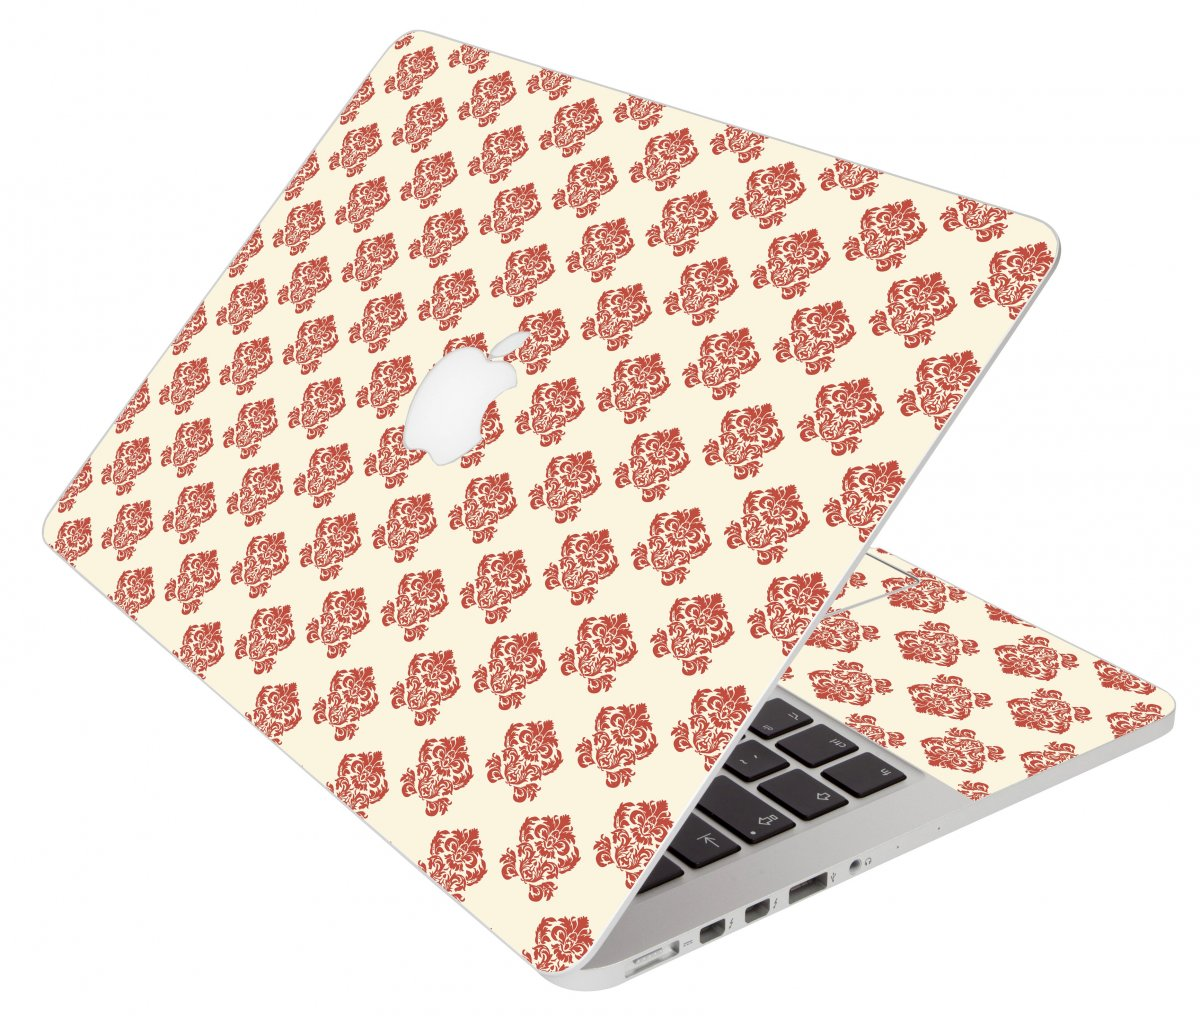 Flower Burst Apple Macbook Air 13 A1466 Laptop Skin